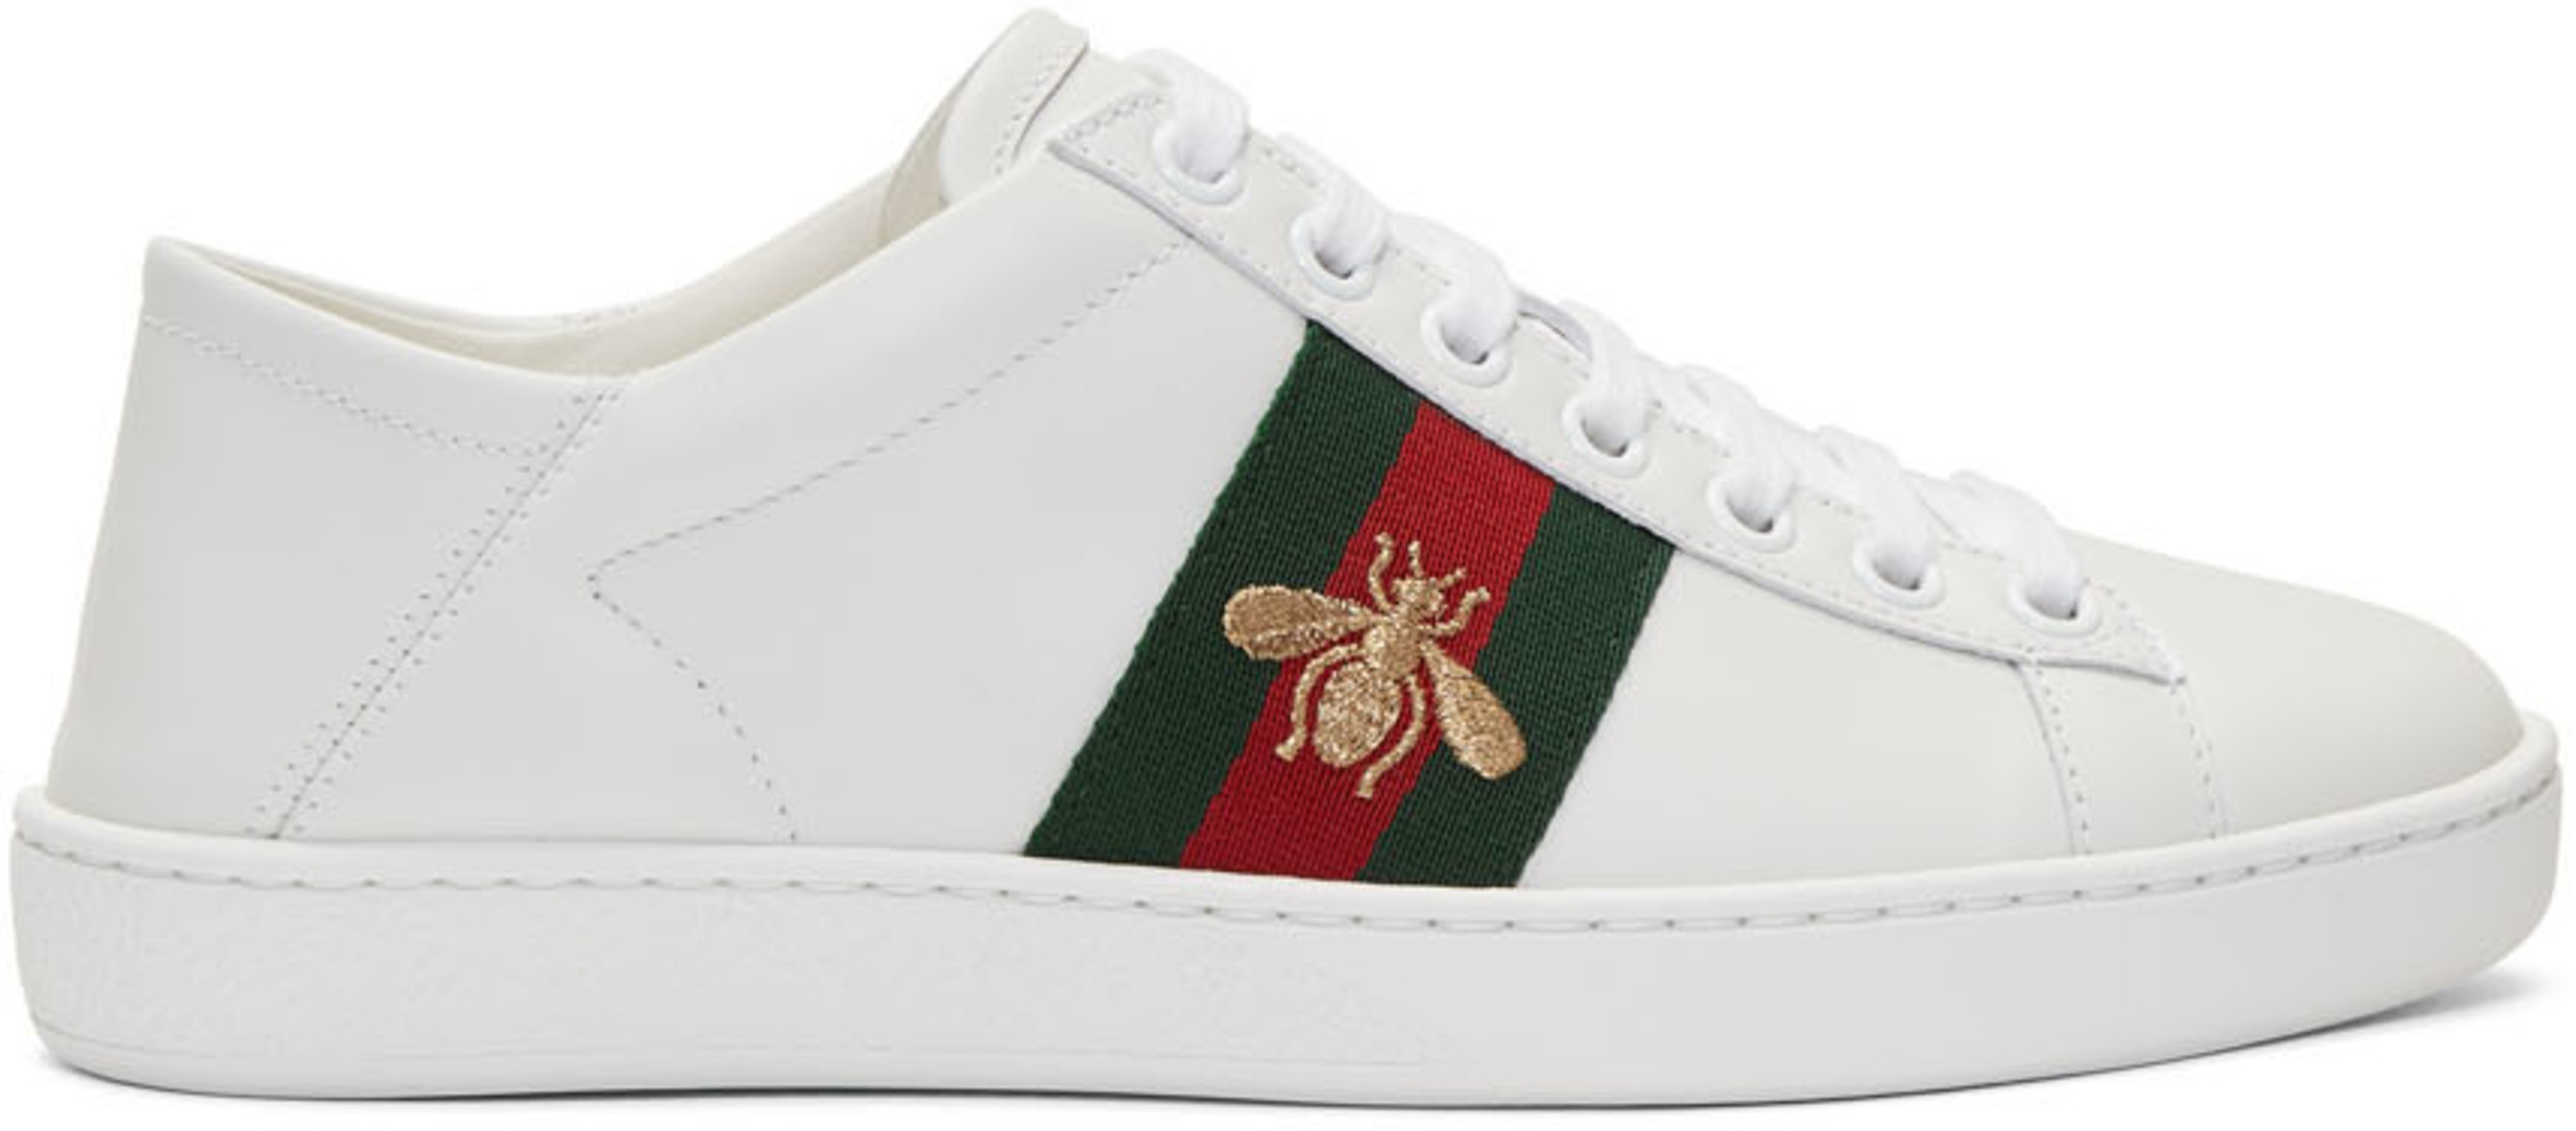 5820b99ca1 White Leather Ace Sneakers